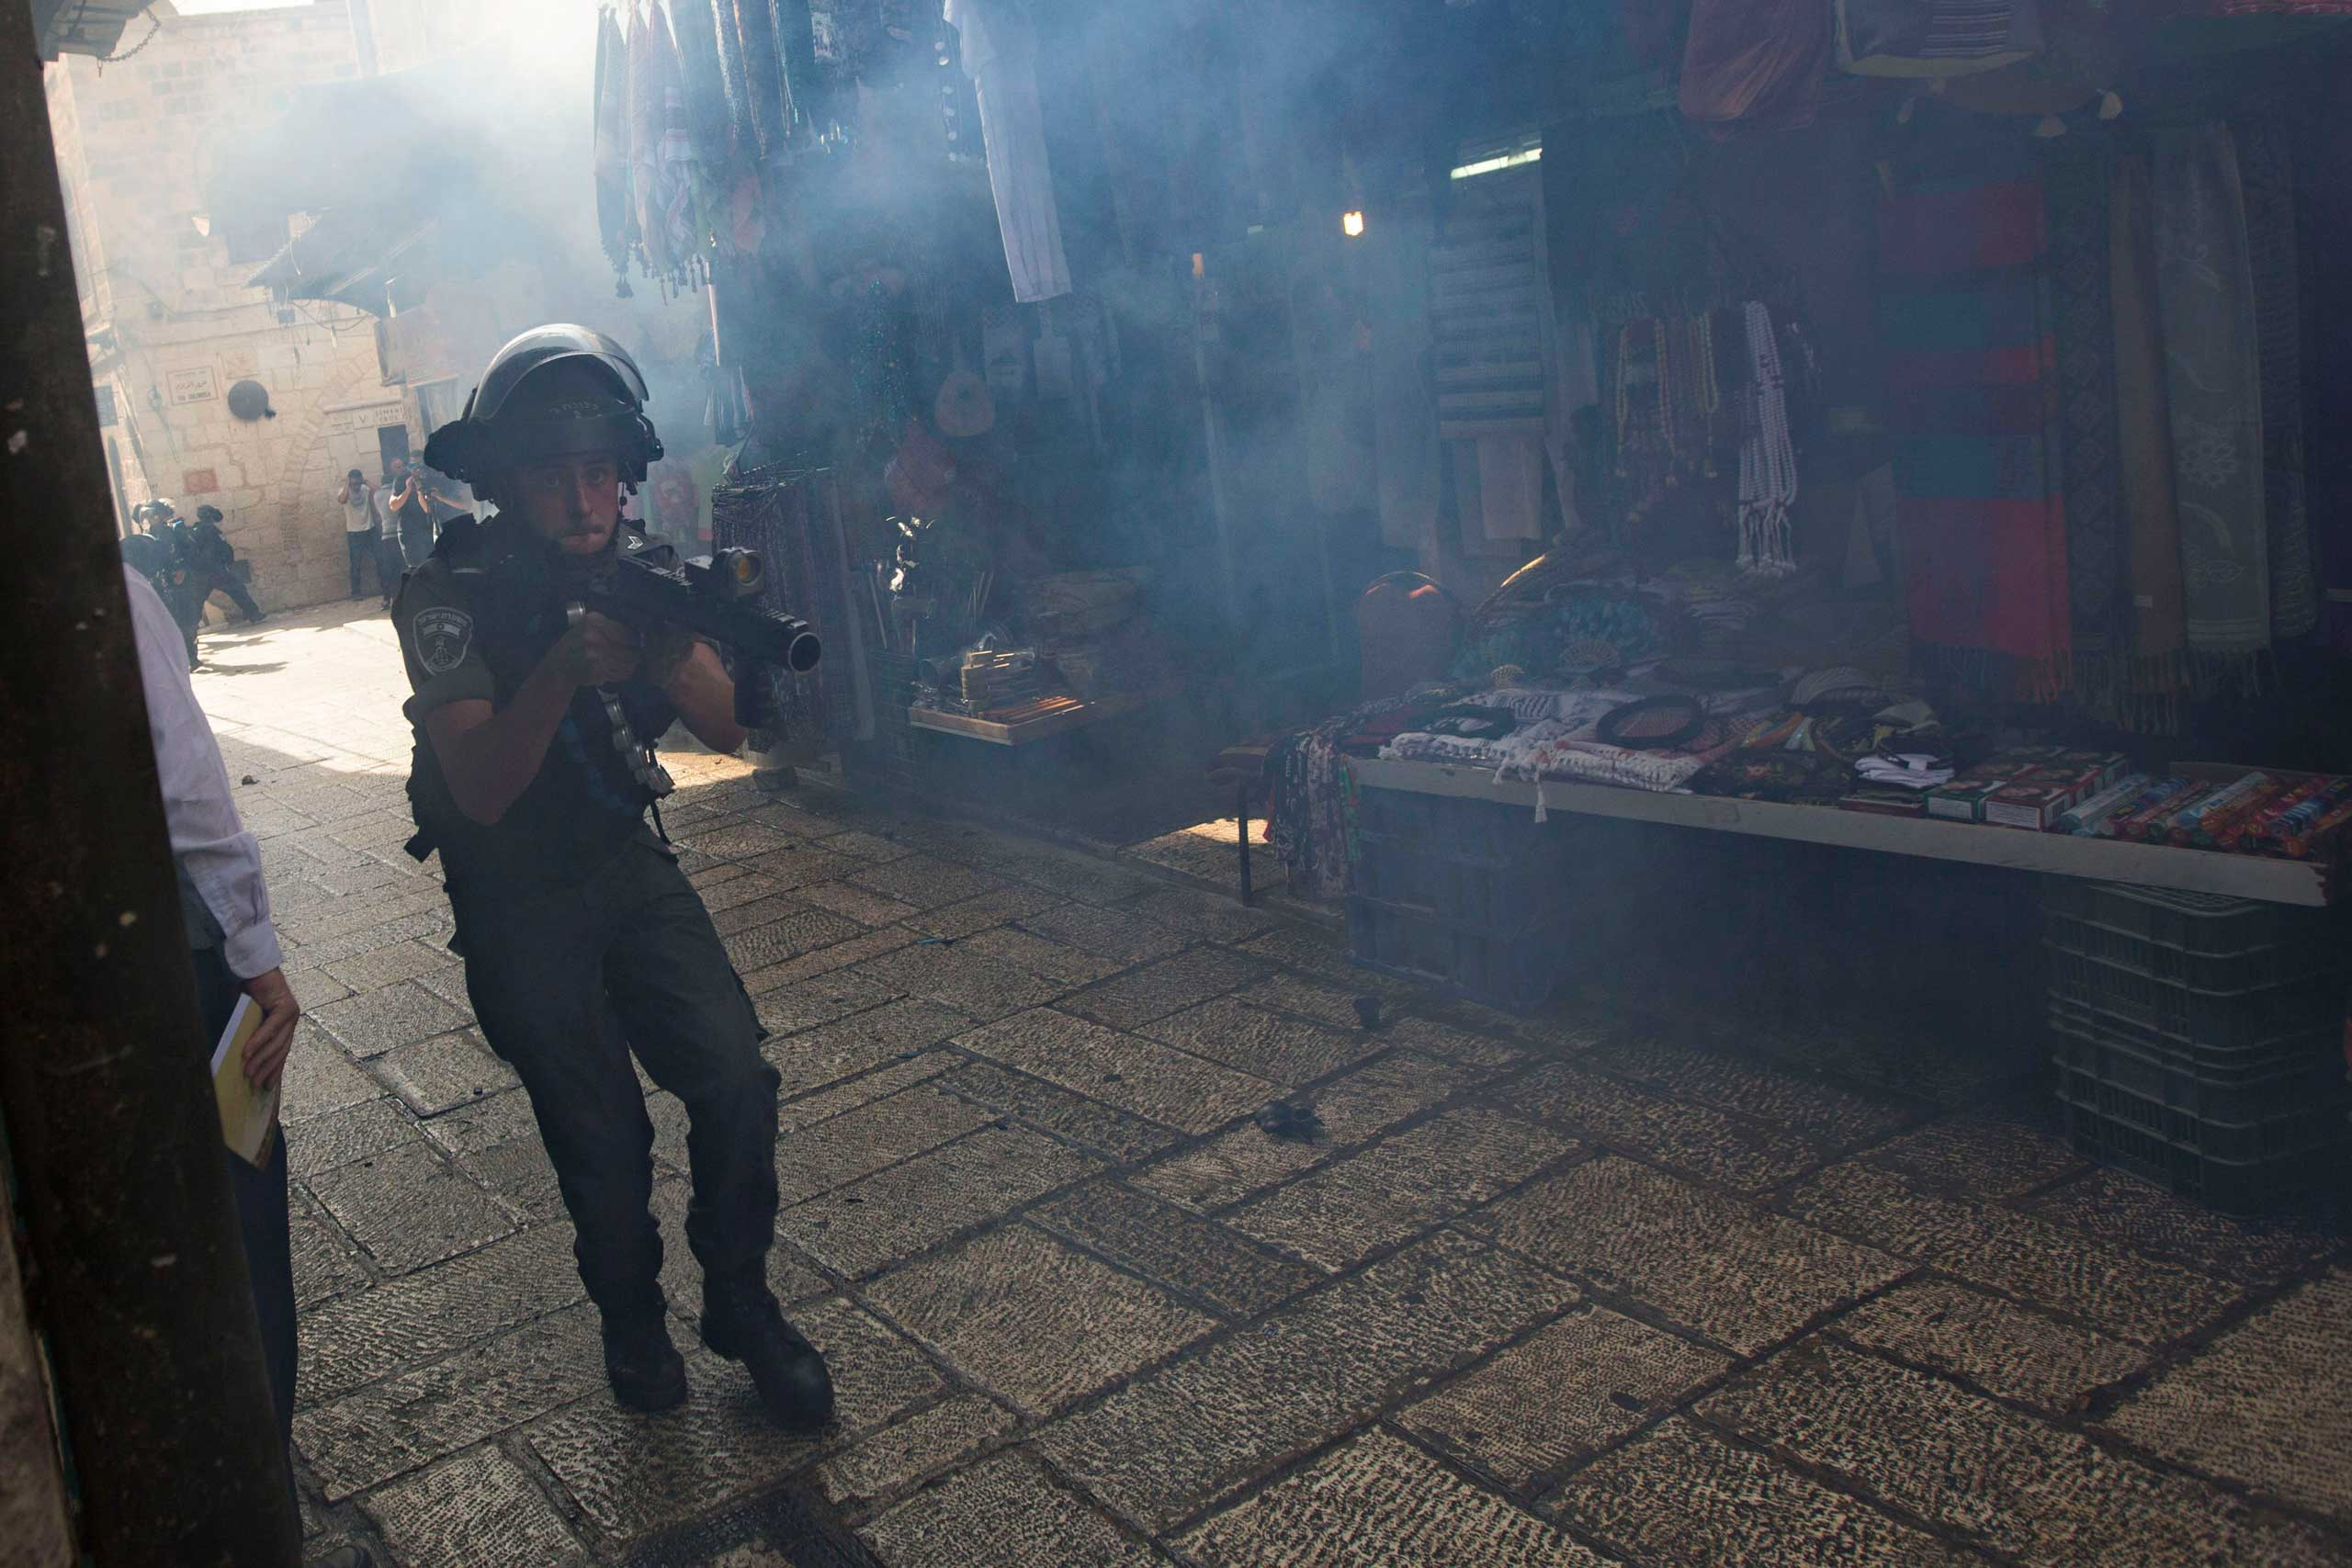 An Israeli border police officer is seen during clashes with Palestinian protesters in Jerusalem's old city, on Sept. 15, 2015, in a third straight day of unrest at Jerusalem's most sensitive holy site.